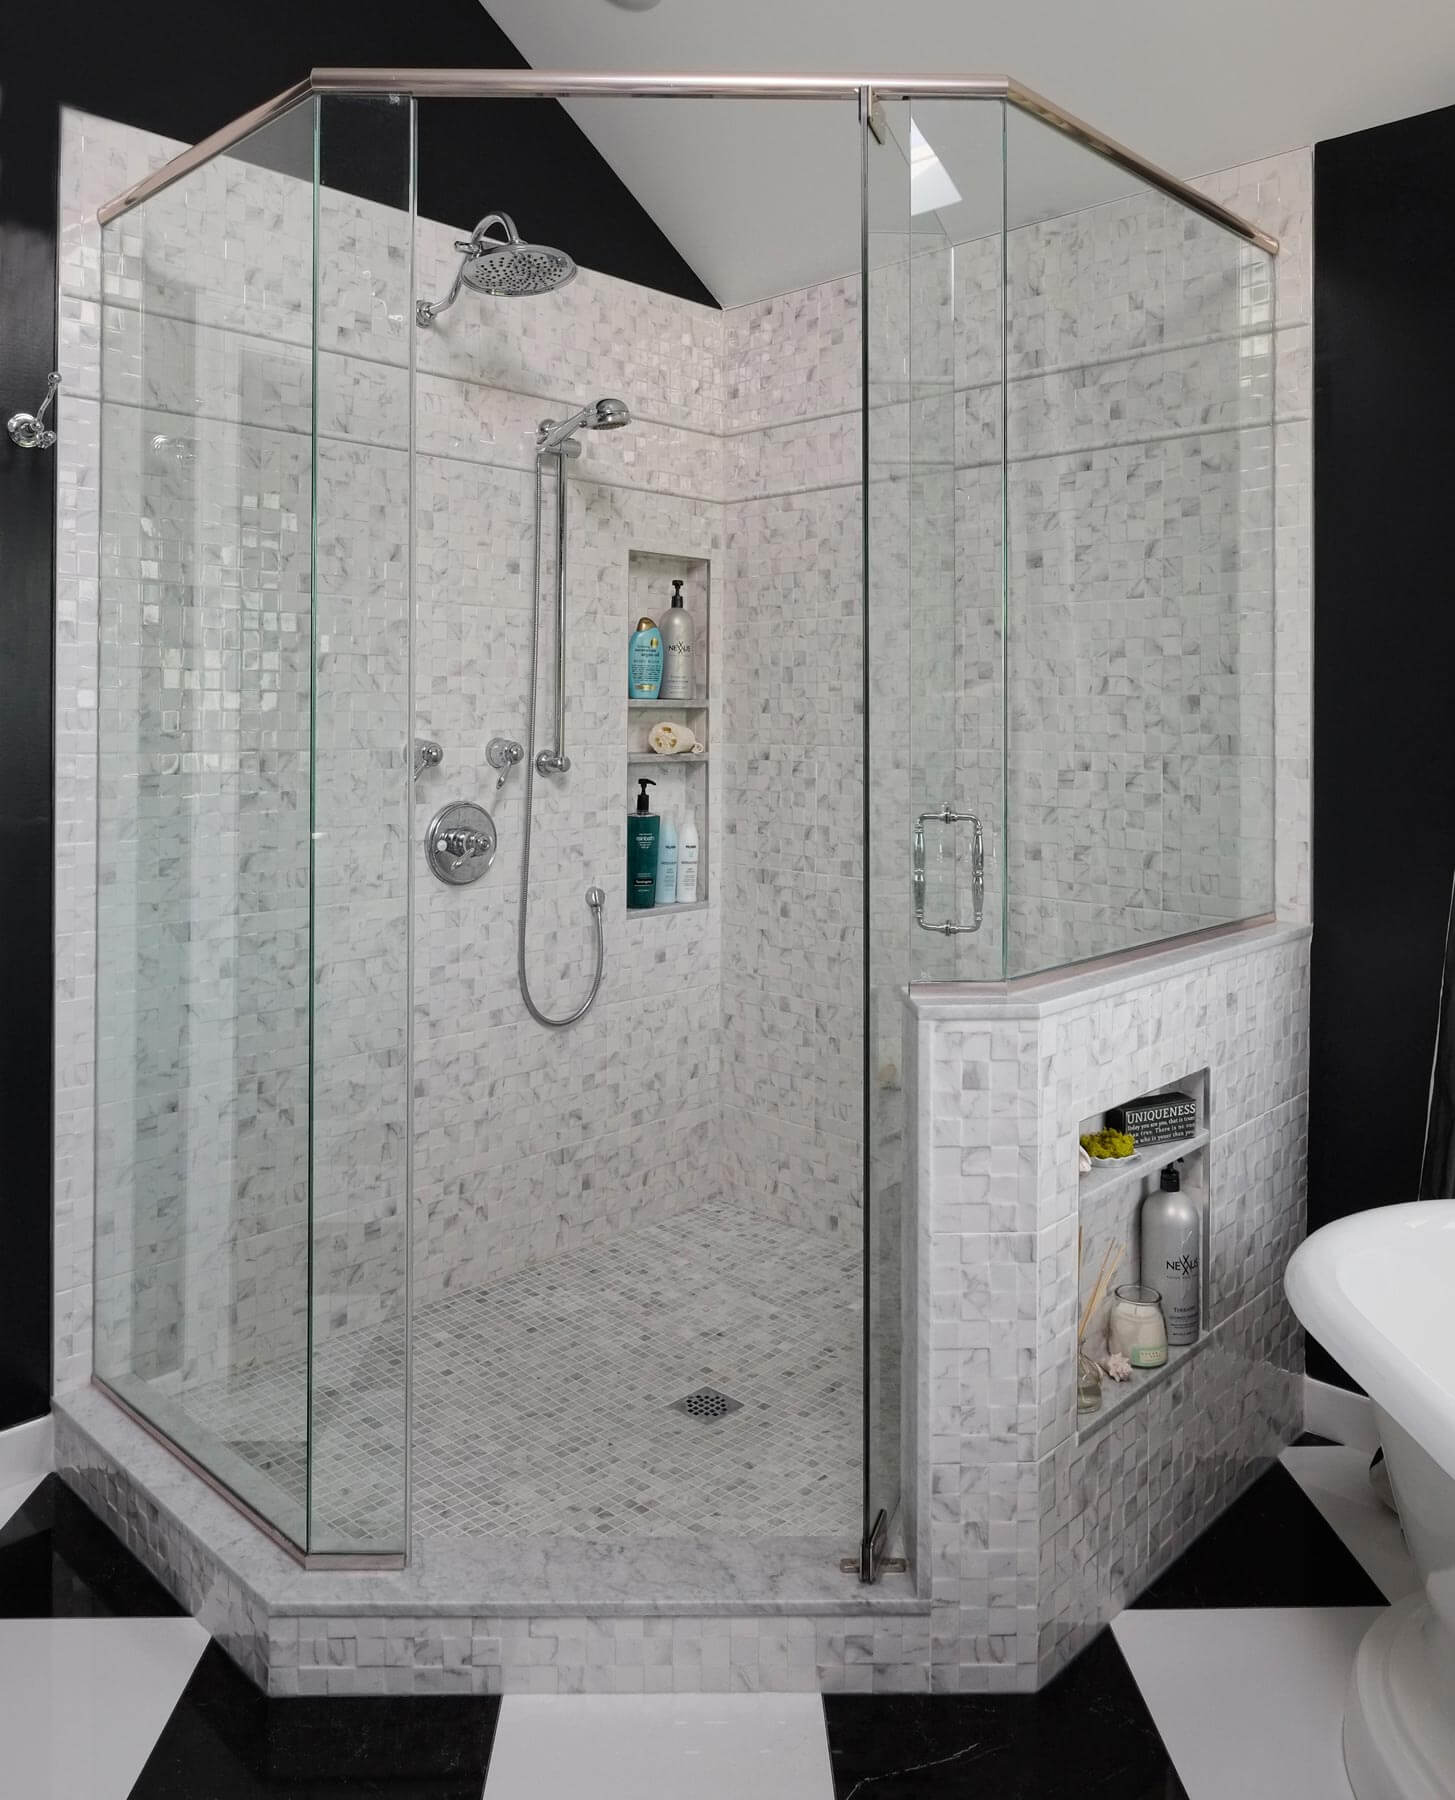 The tile shower structure holds built-in shelving within and outside the glass enclosure. Chromed hardware and faucets assist in the elegant look.